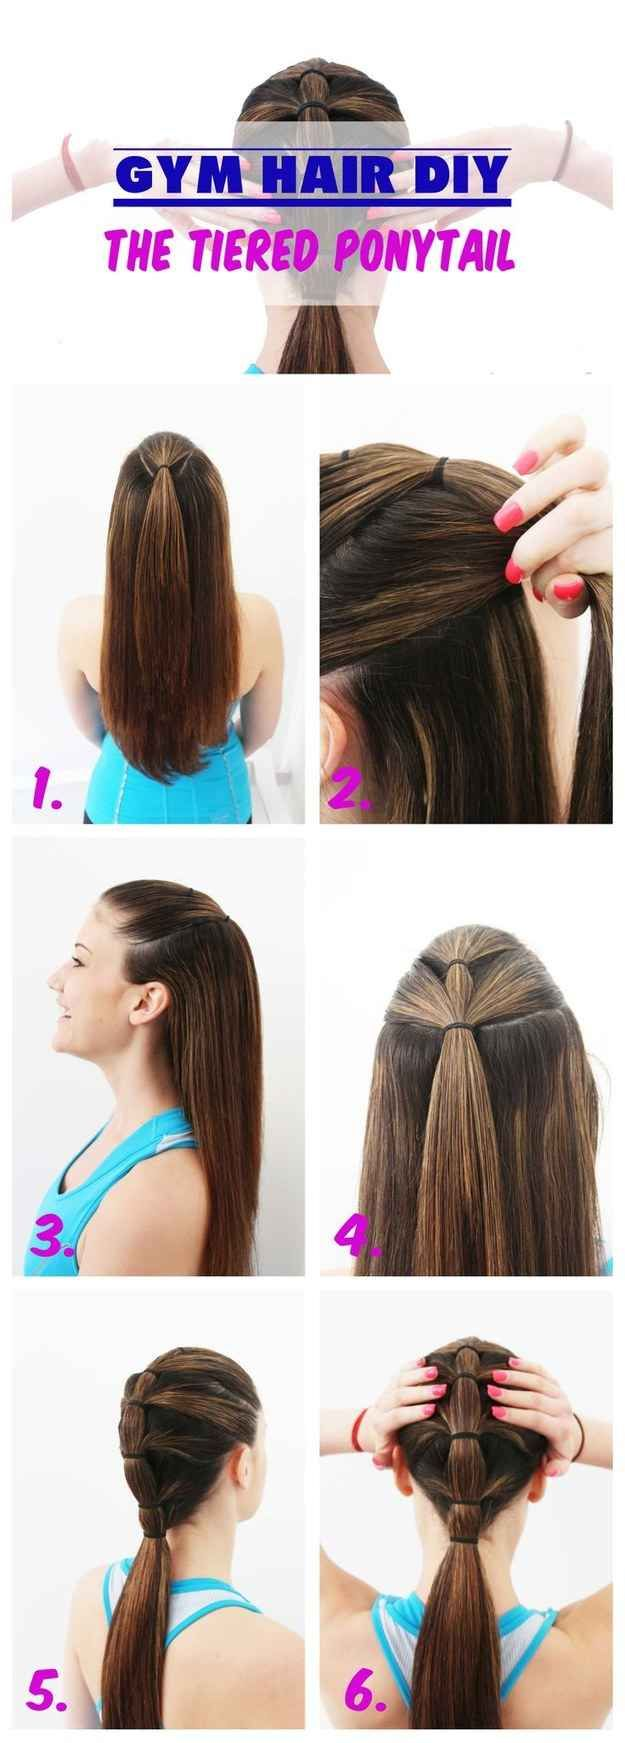 A tiered ponytail will keep everything in its rightful place. | 18 Ingenious Hair Hacks For The Gym